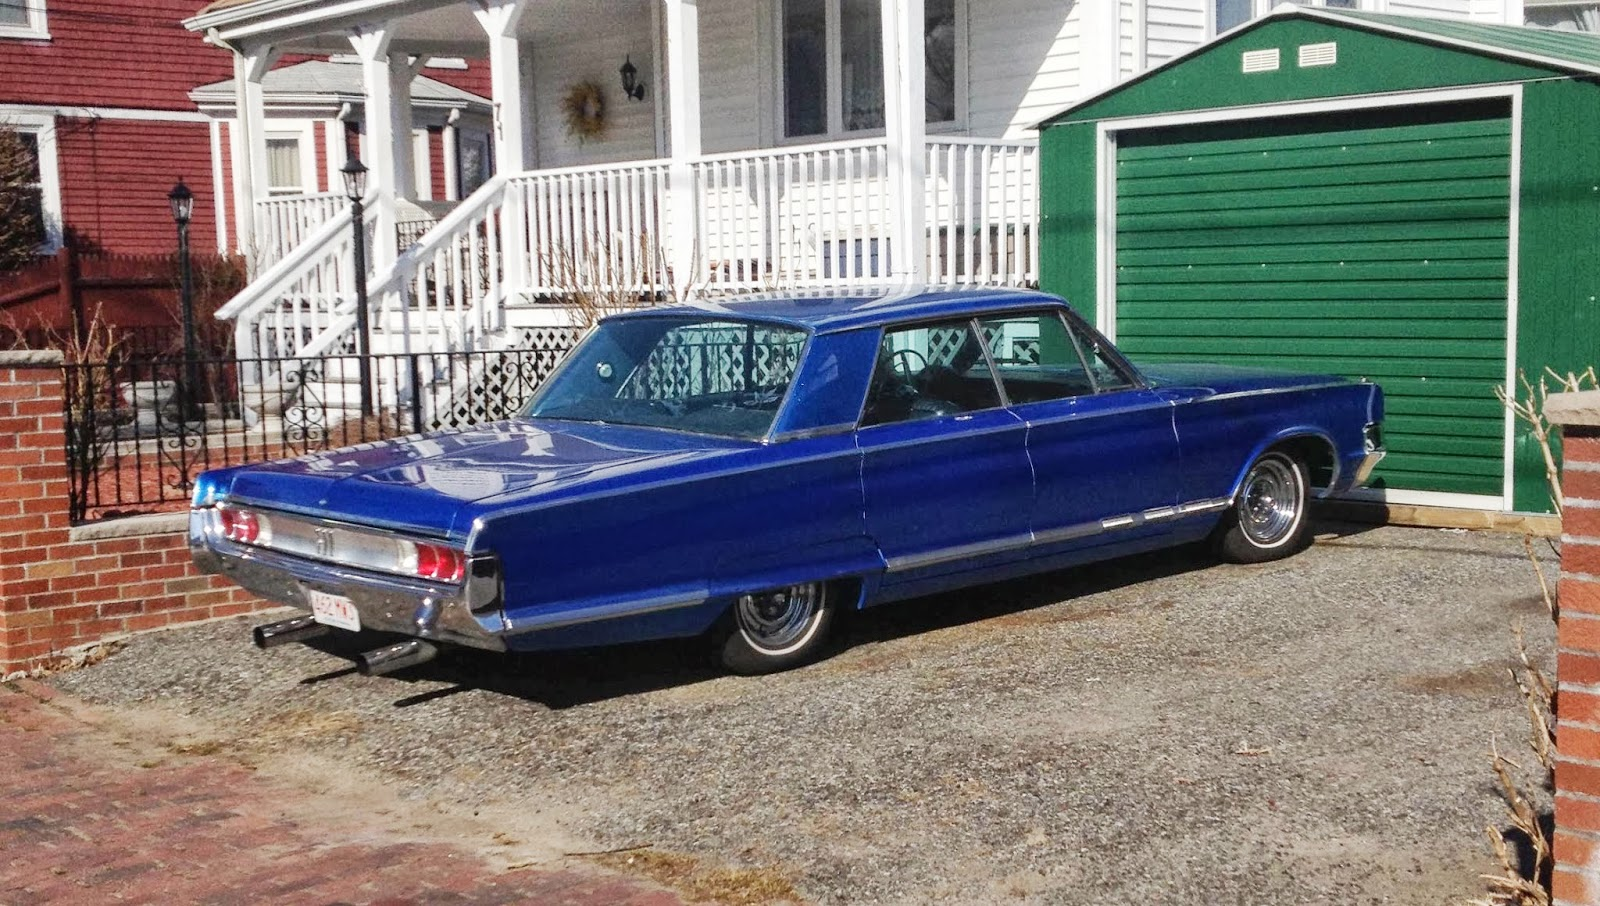 The Land Barge Above Is A 1965 Chrysler 300 Four Door Hardtop You Know I Got Me It S As Whale And About To Set Sail